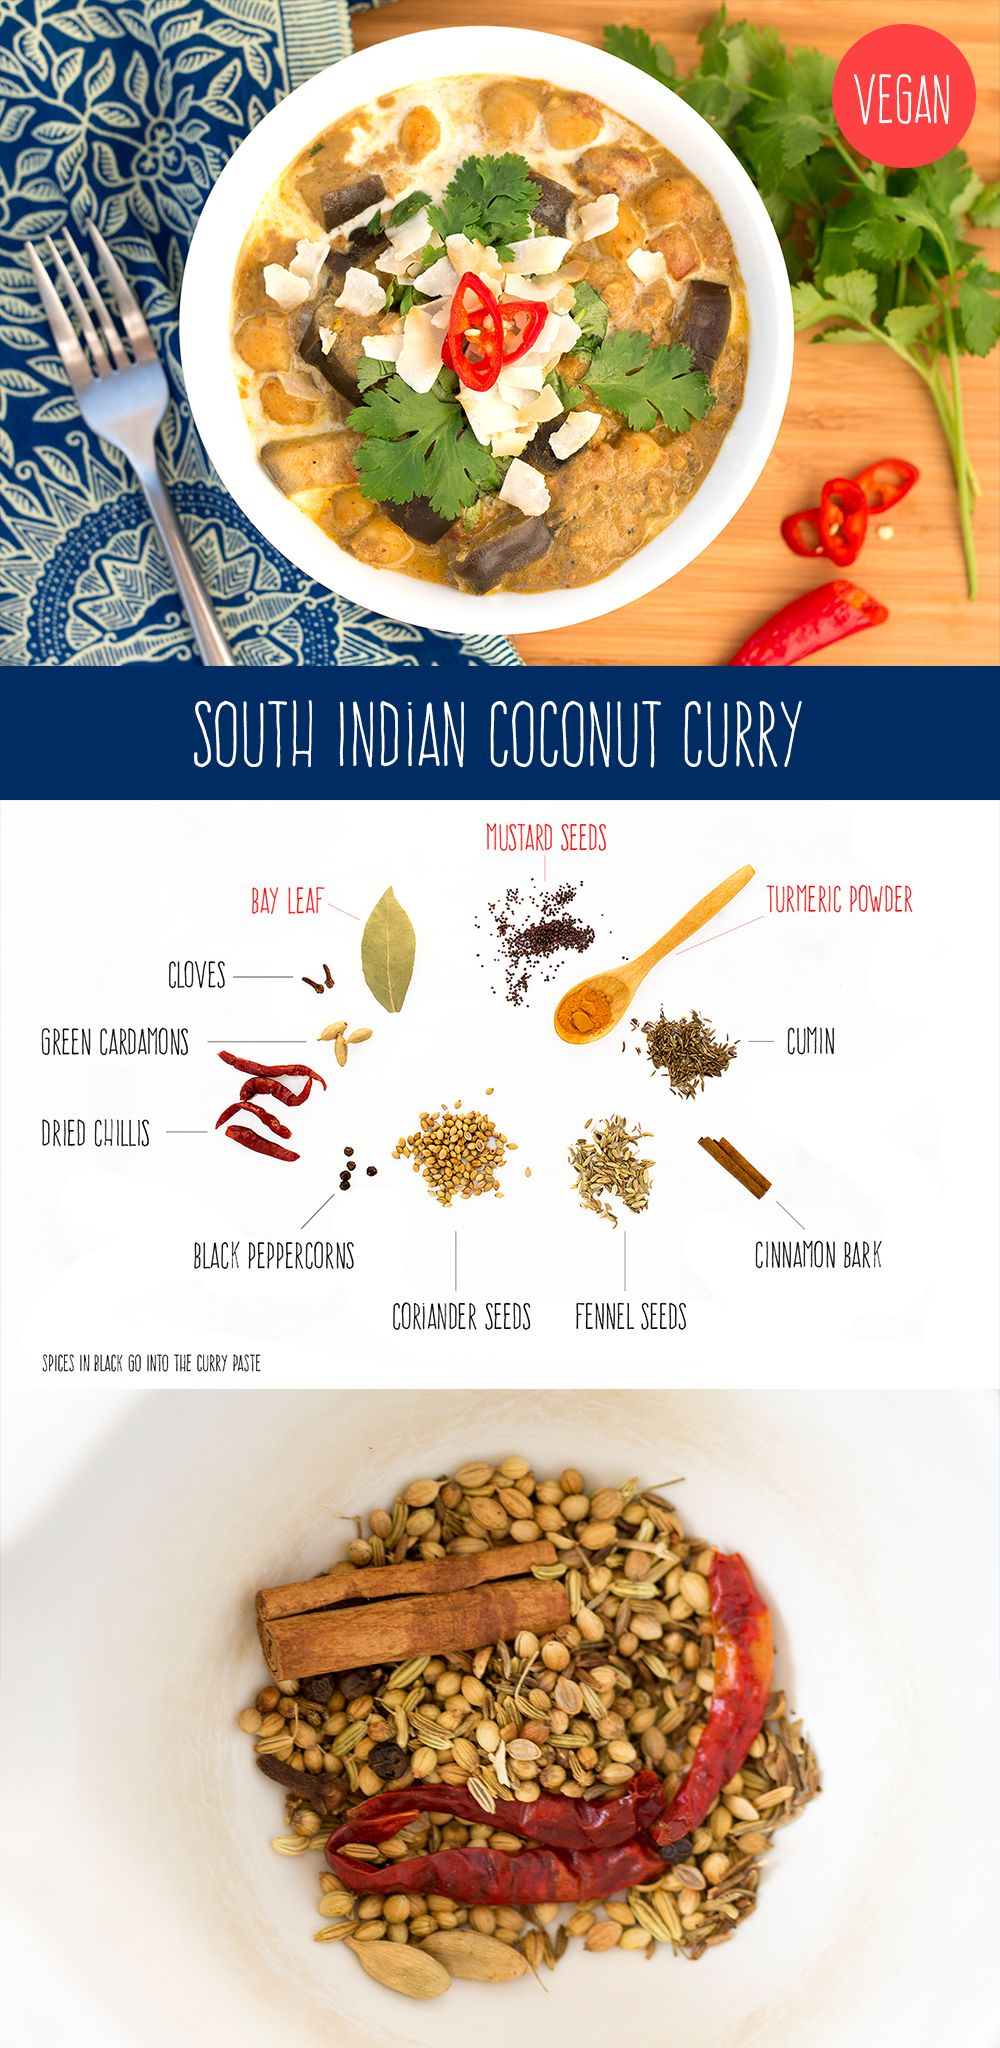 South Indian coconut curry | Recipe | Indian curry, Vegan vegetarian ...